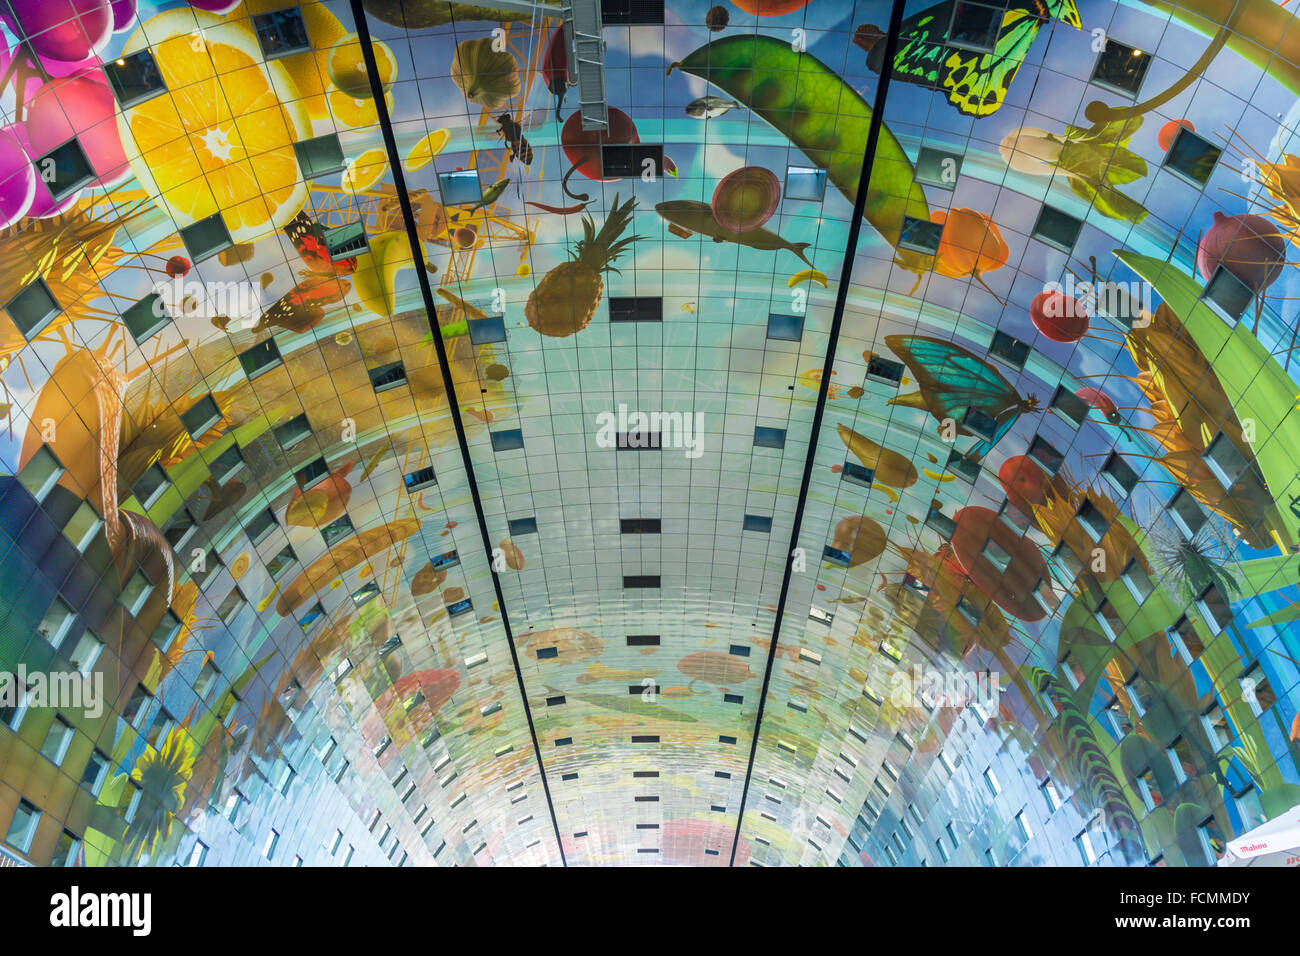 Markthal market hall ceiling Rotterdam, the Netherlands Stock Photo